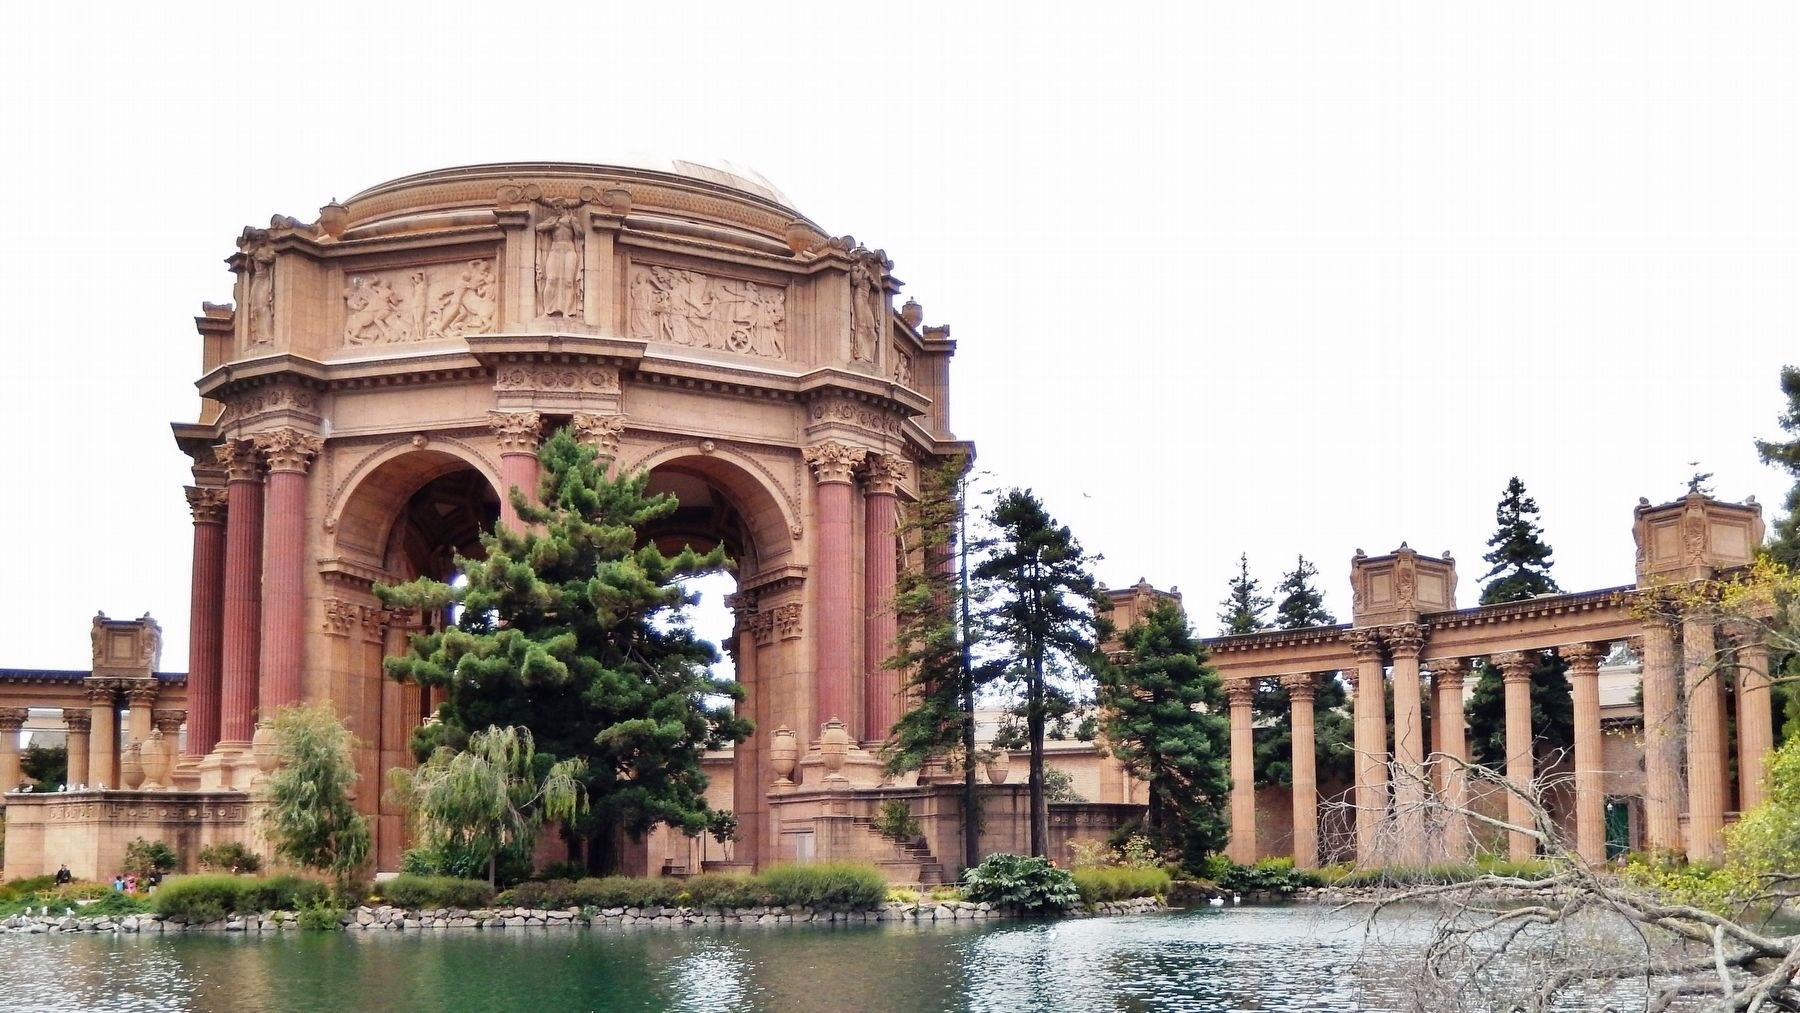 Palace of Fine Arts Rotunda & Colonnade (<i>view from marker</i>) image. Click for full size.